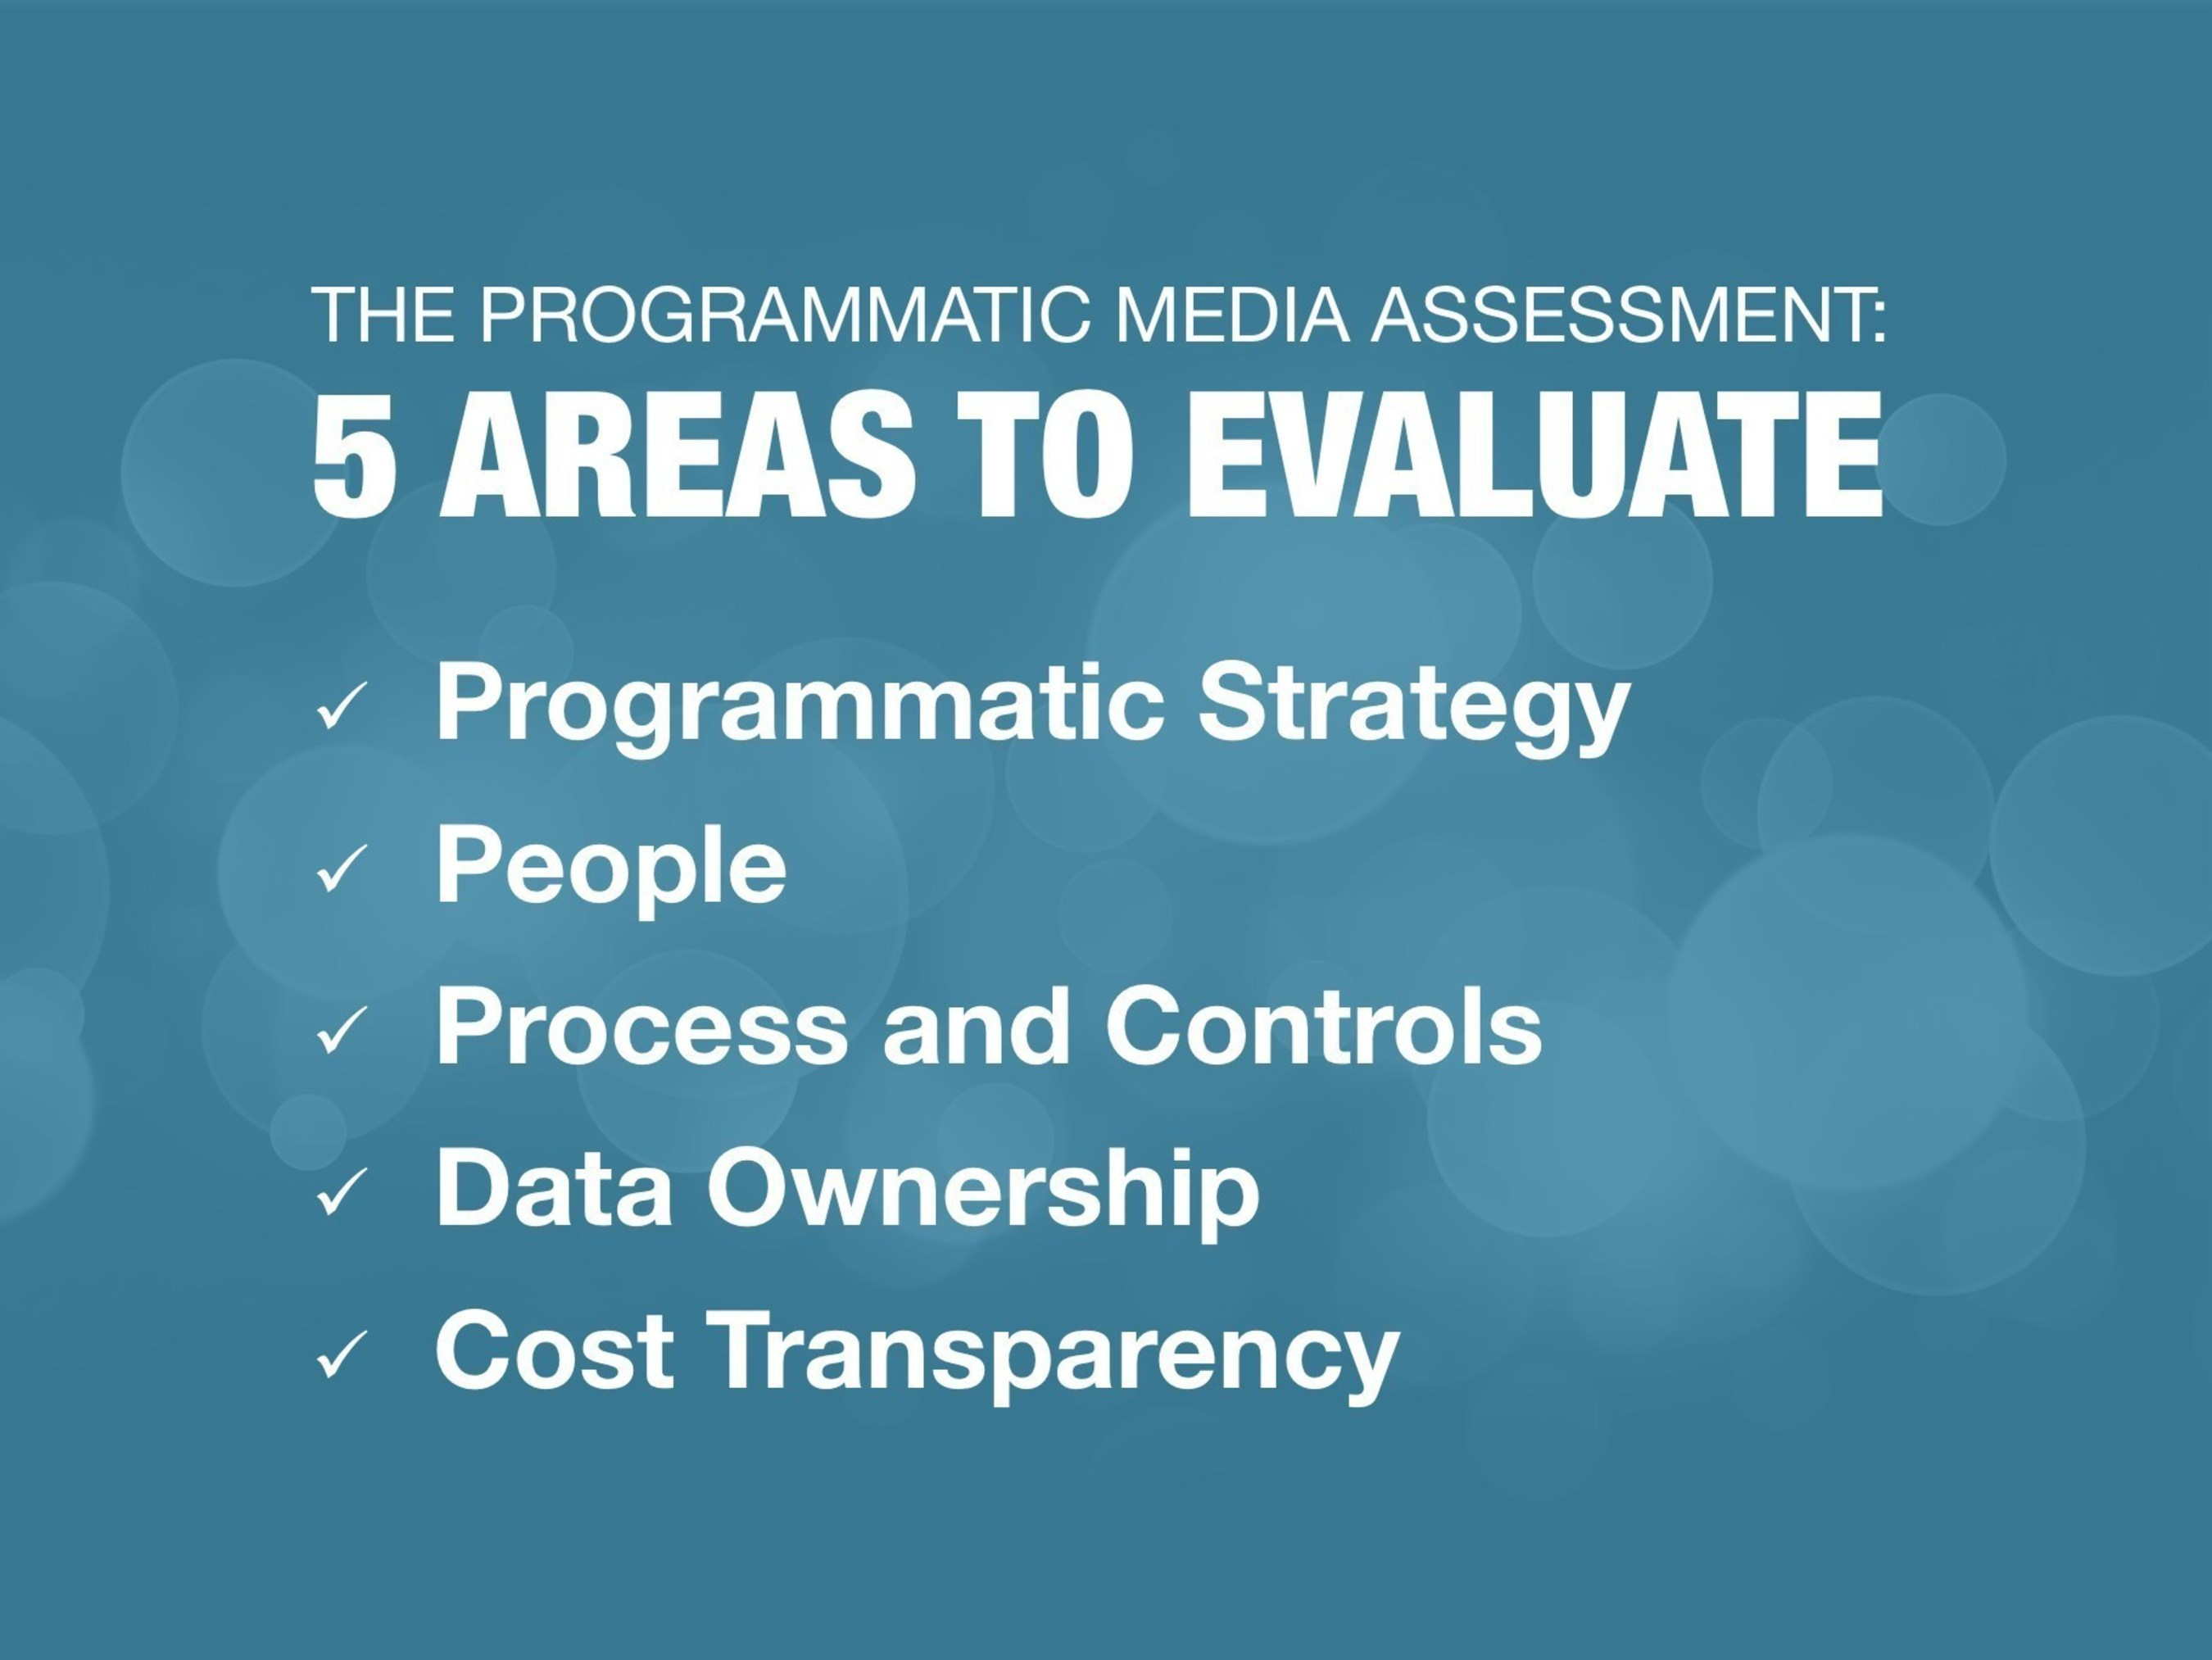 Marketers can initiate the programmatic assessment process by completing a brief, online survey (15 minutes) at www.transparentmedia.partners/assessment.